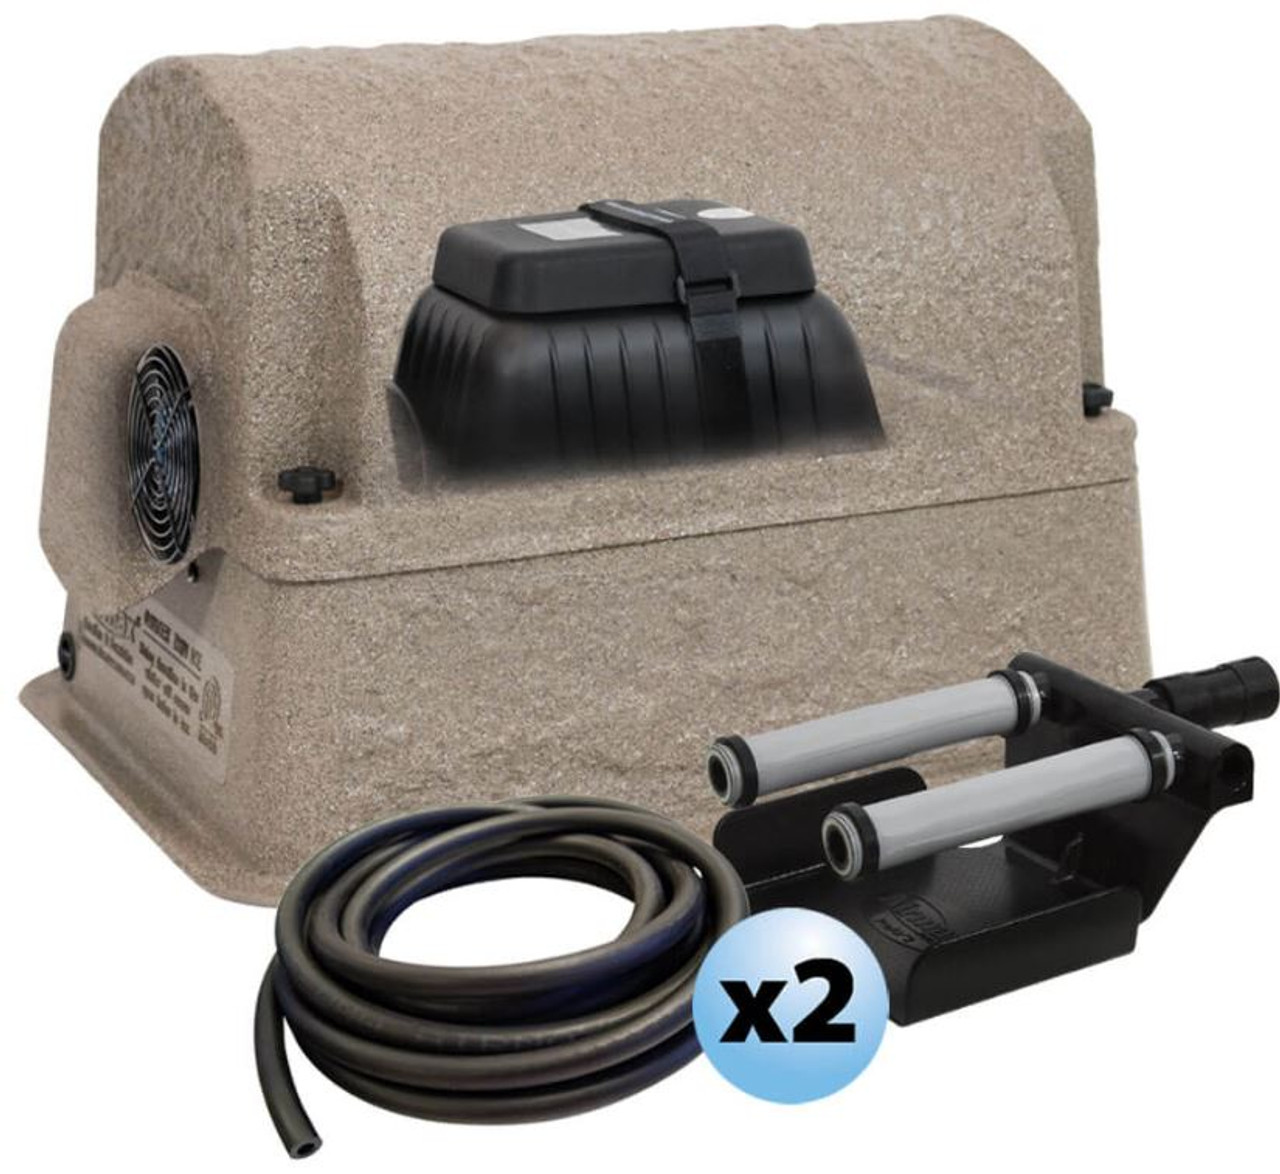 Airmax shallow water series pond aerator, Airmax sw20